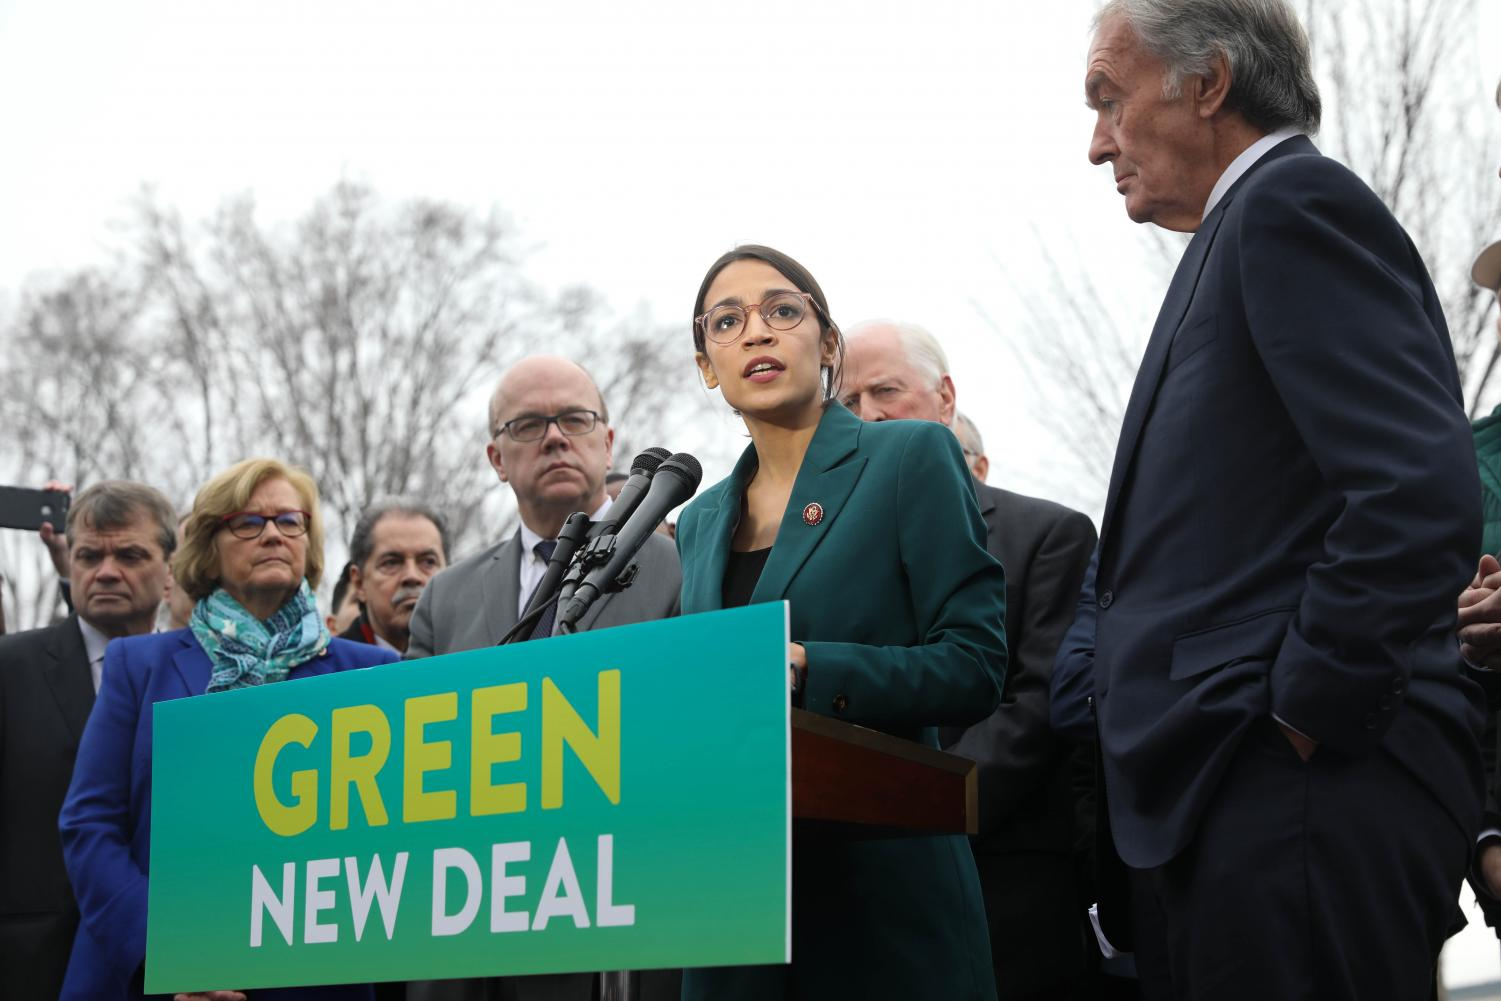 AOC announcing the Green New Deal. Source: https://upload.wikimedia.org/wikipedia/commons/9/99/GreenNewDeal_Presser_020719_%2826_of_85%29_%2846105848855%29.jpg